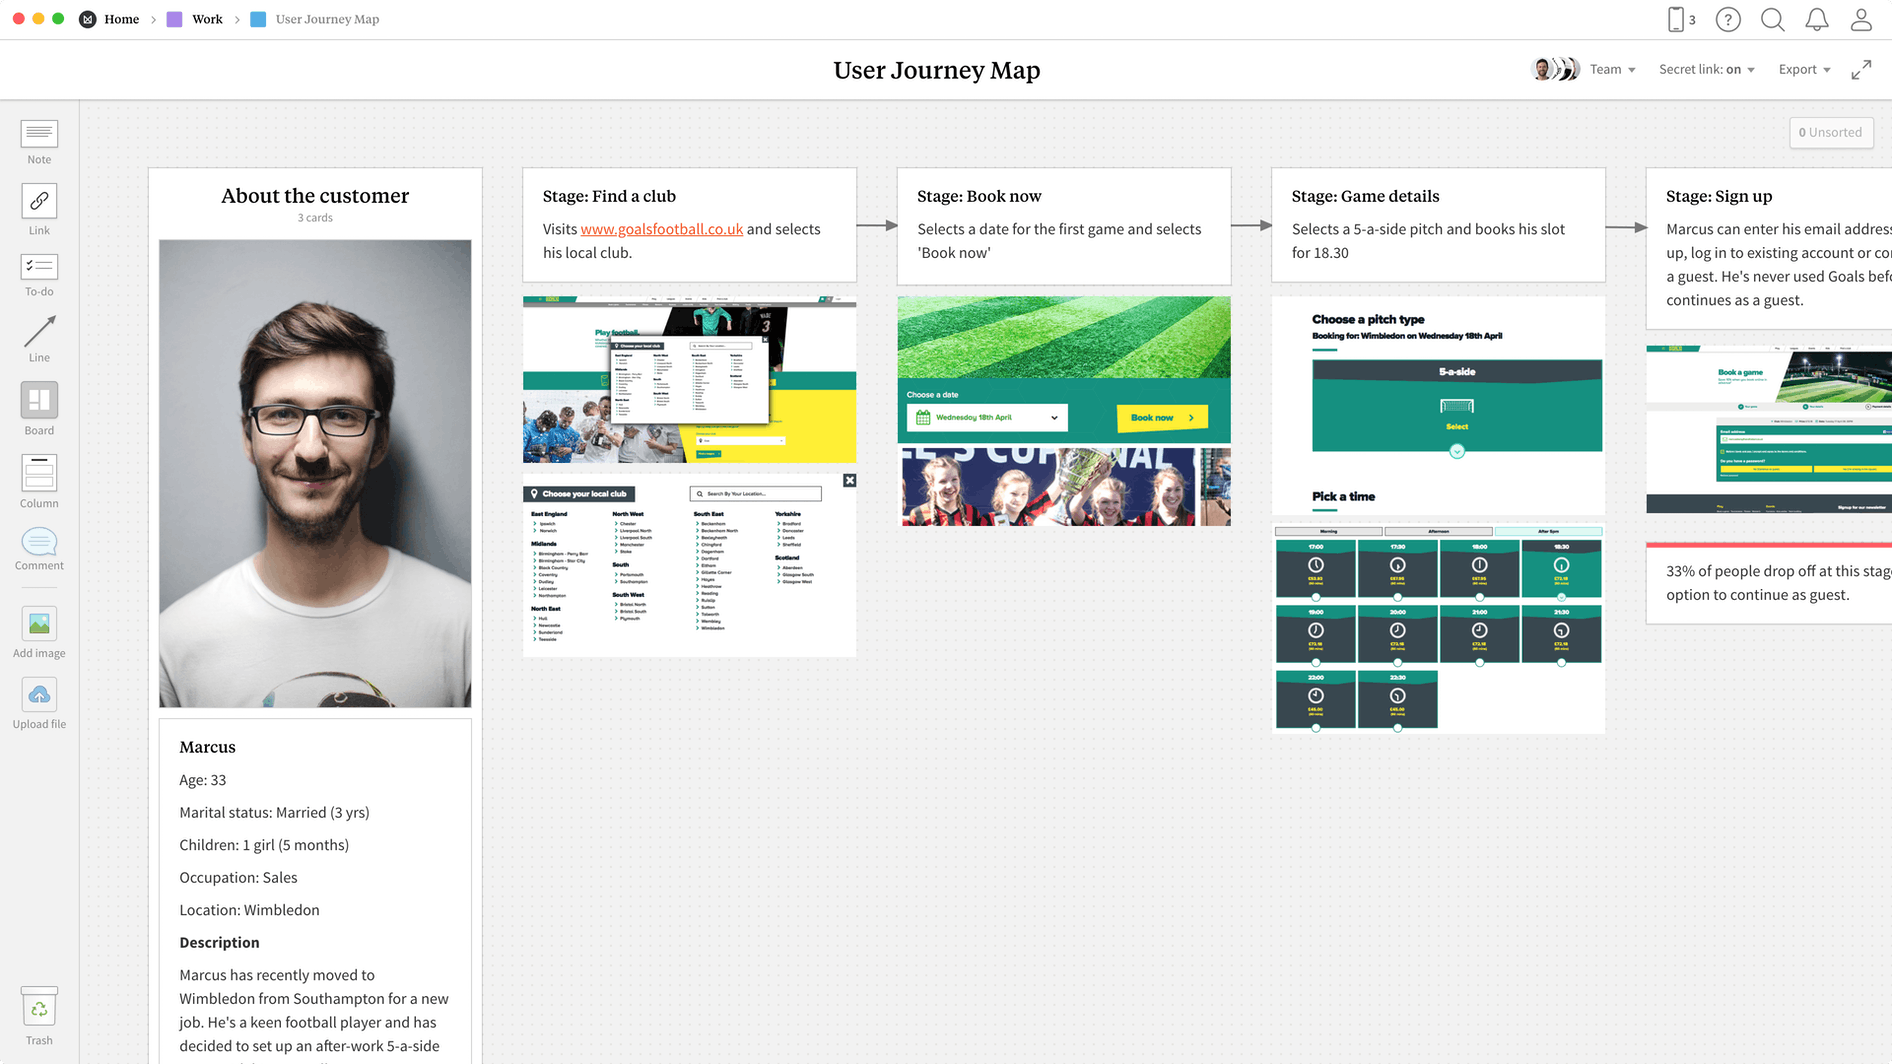 User Journey Map Template, within the Milanote app